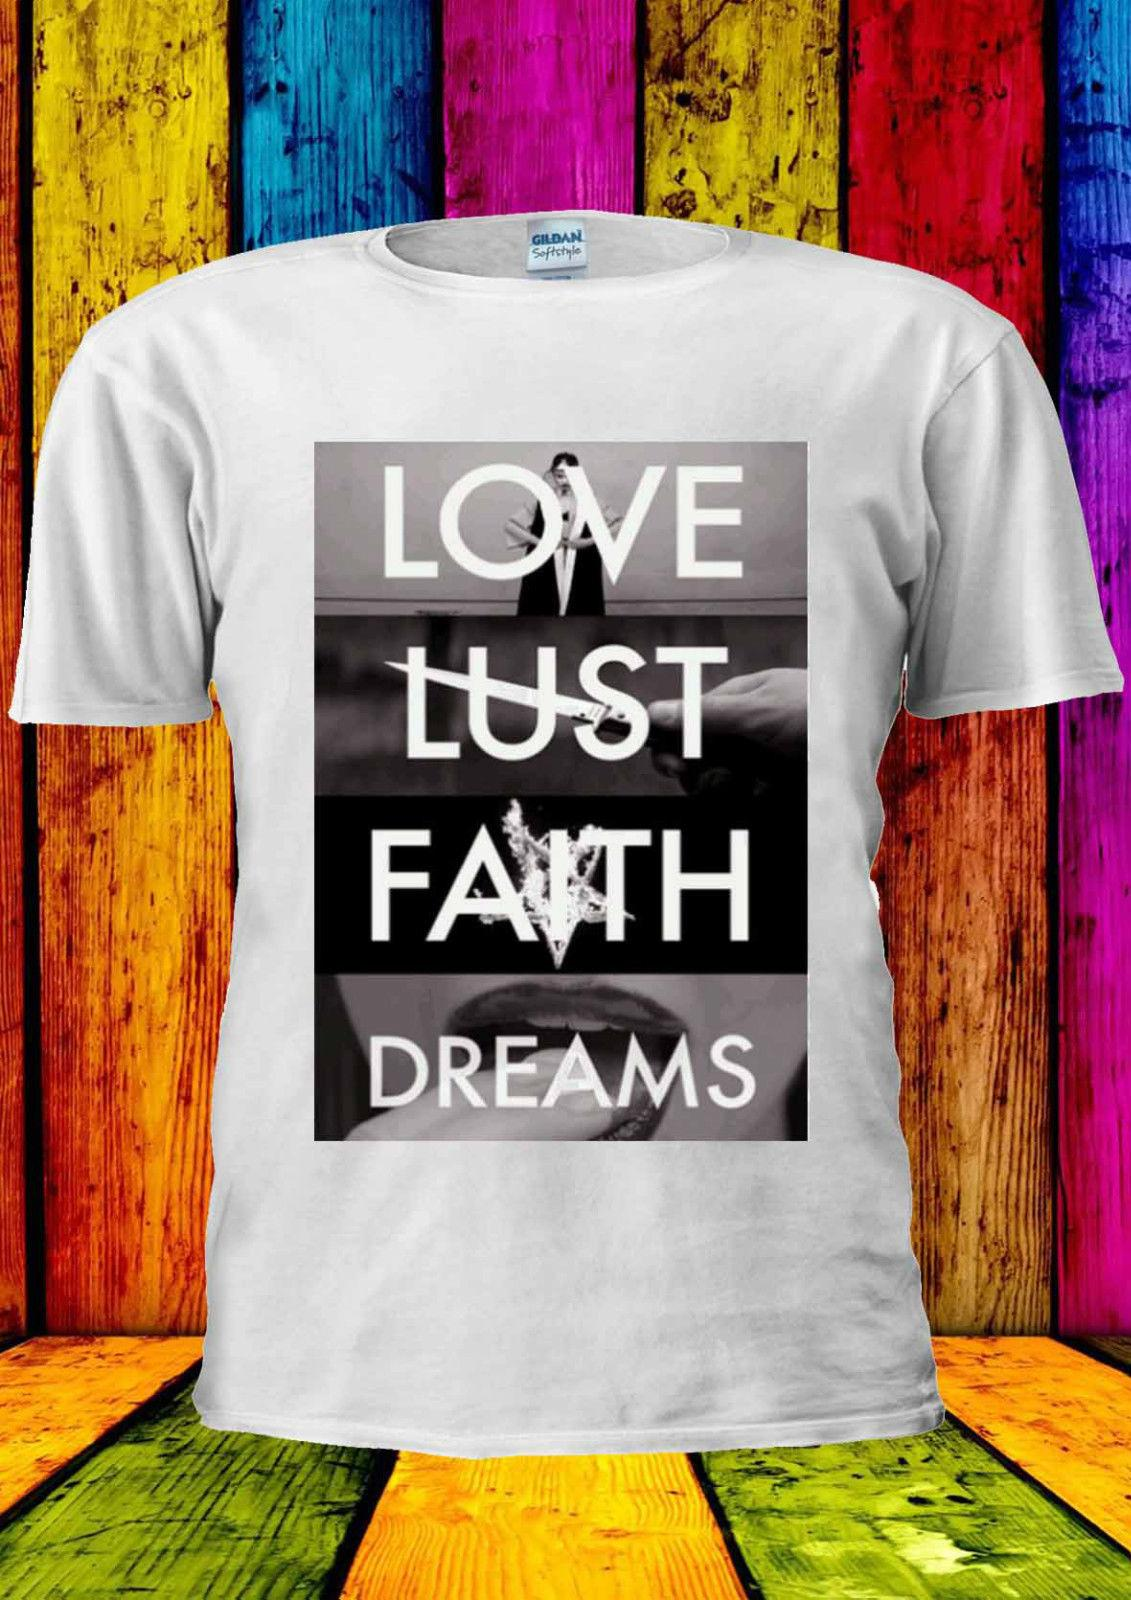 137083b7e Love Lust Faith Dreams Meaningful T Shirt Vest Tank Top Men Women Unisex  1003 Tee Shirt For Sale Worlds Funniest T Shirts From Moviethirt, $11.17|  DHgate.